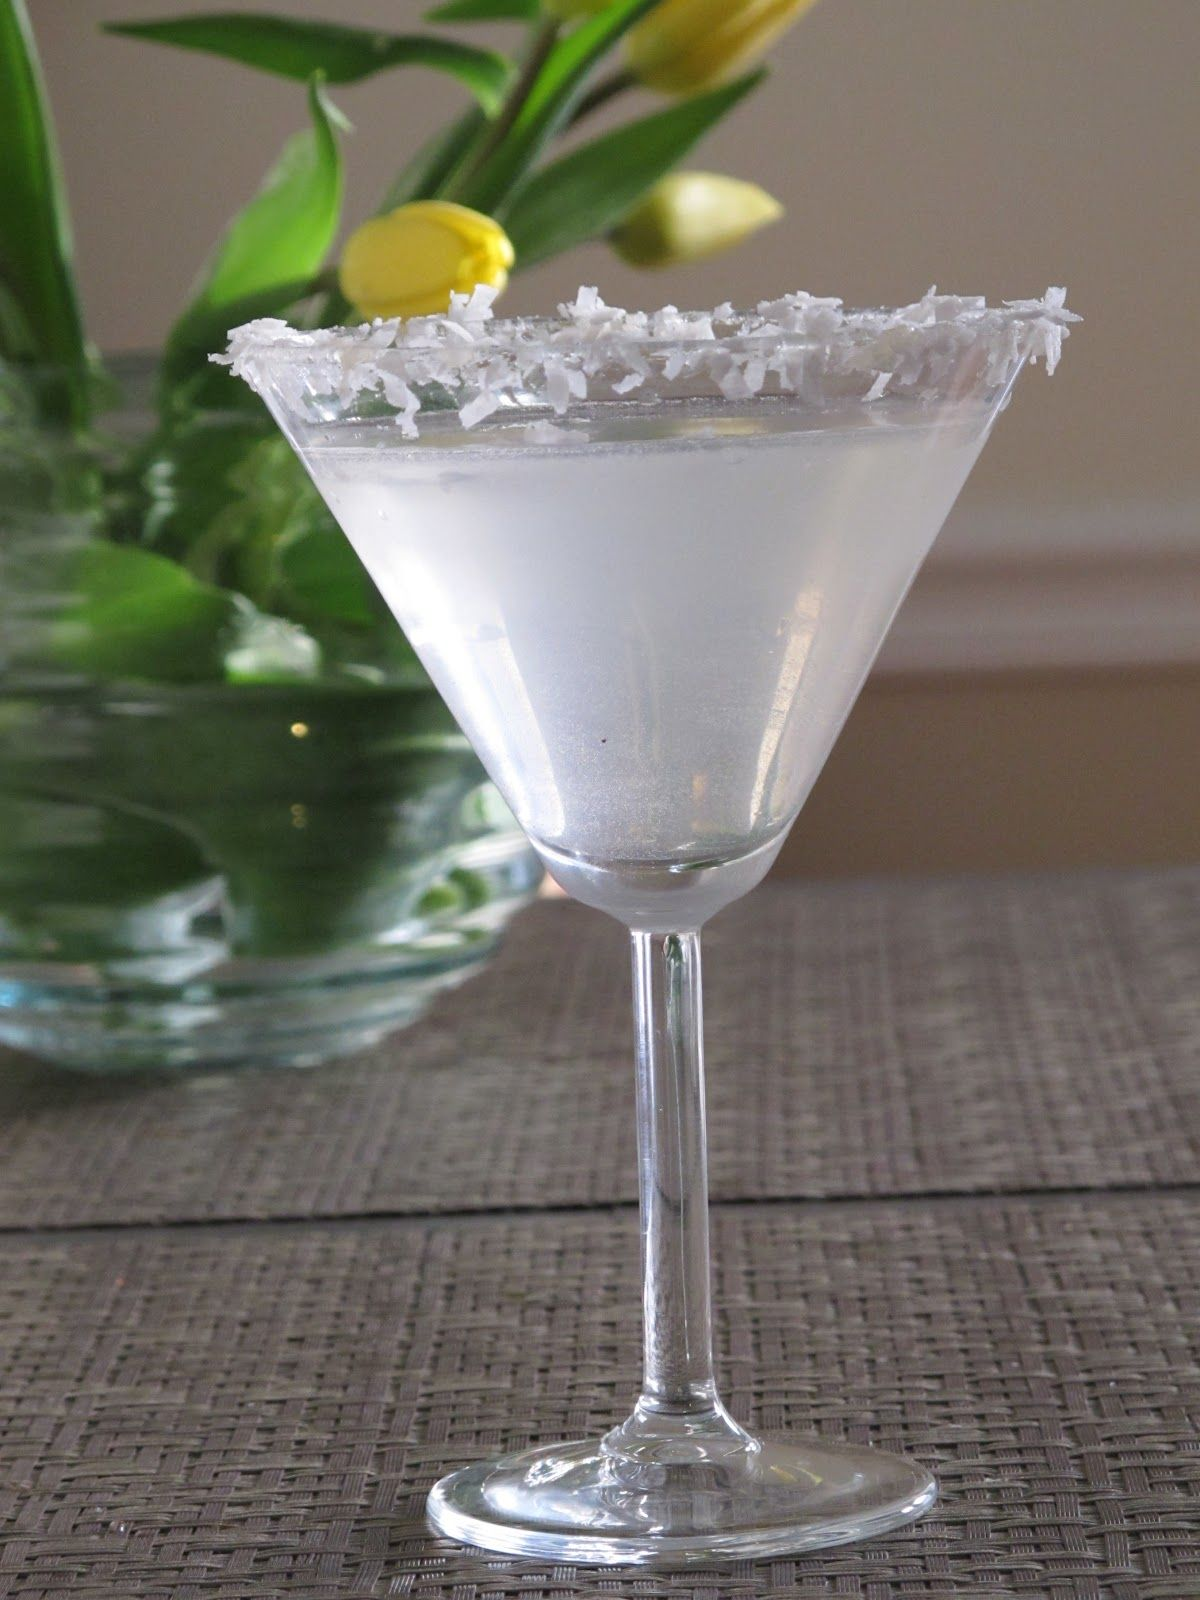 COCONUT CAKE MARTINI Ingredients 1 part CakeFlavored Vodka 3